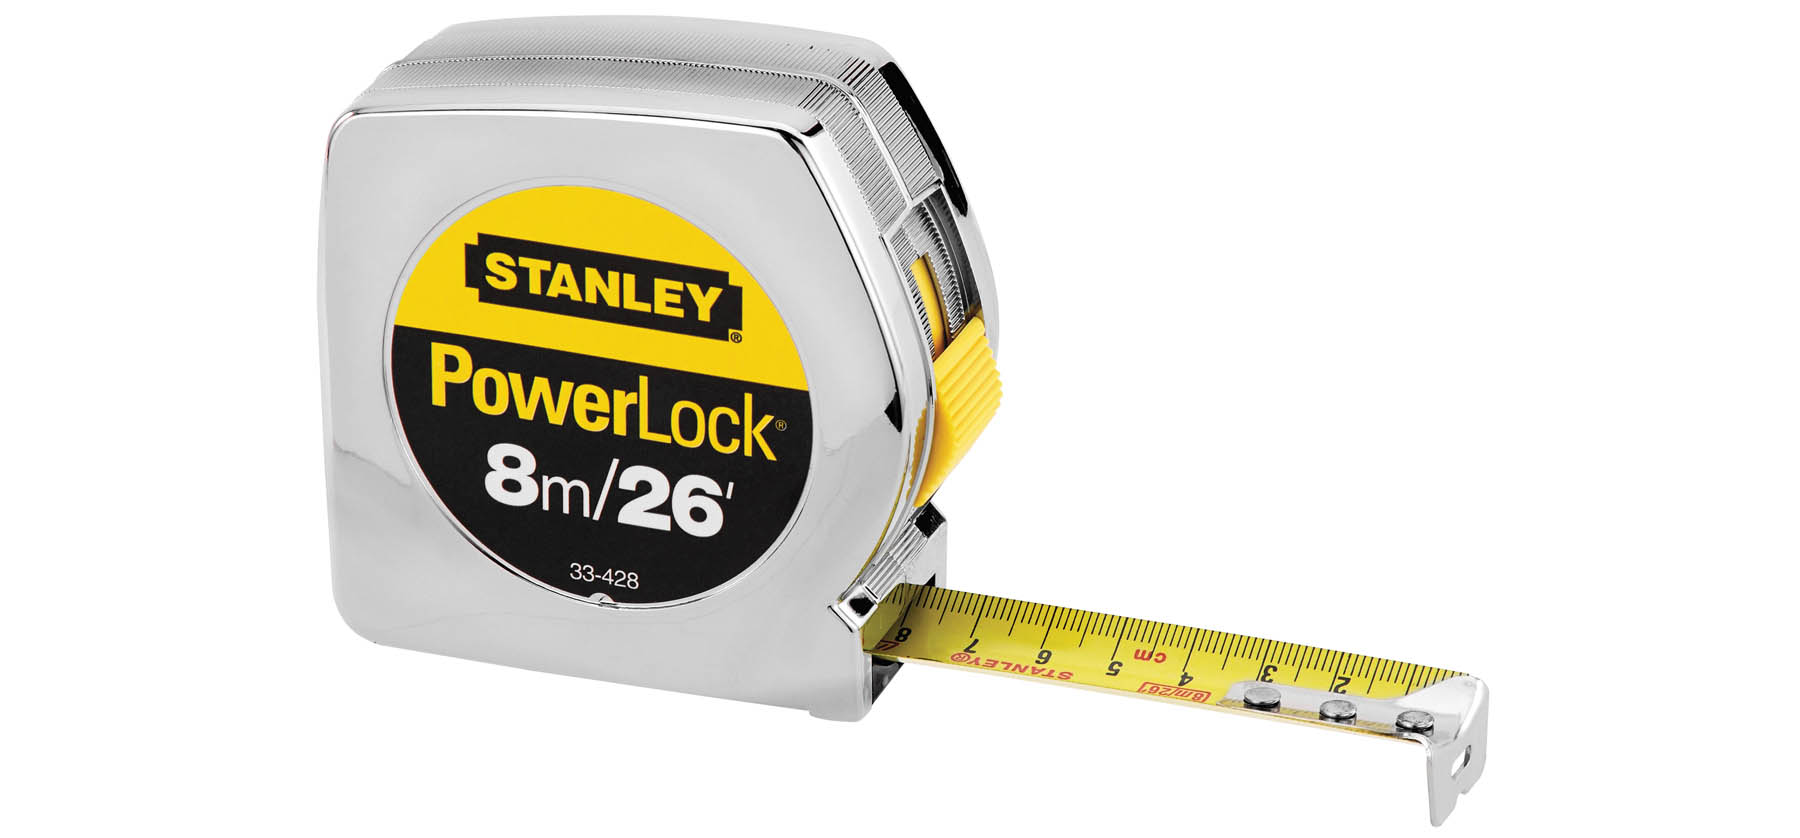 tape measure 26' basic tool for beginner woodworking